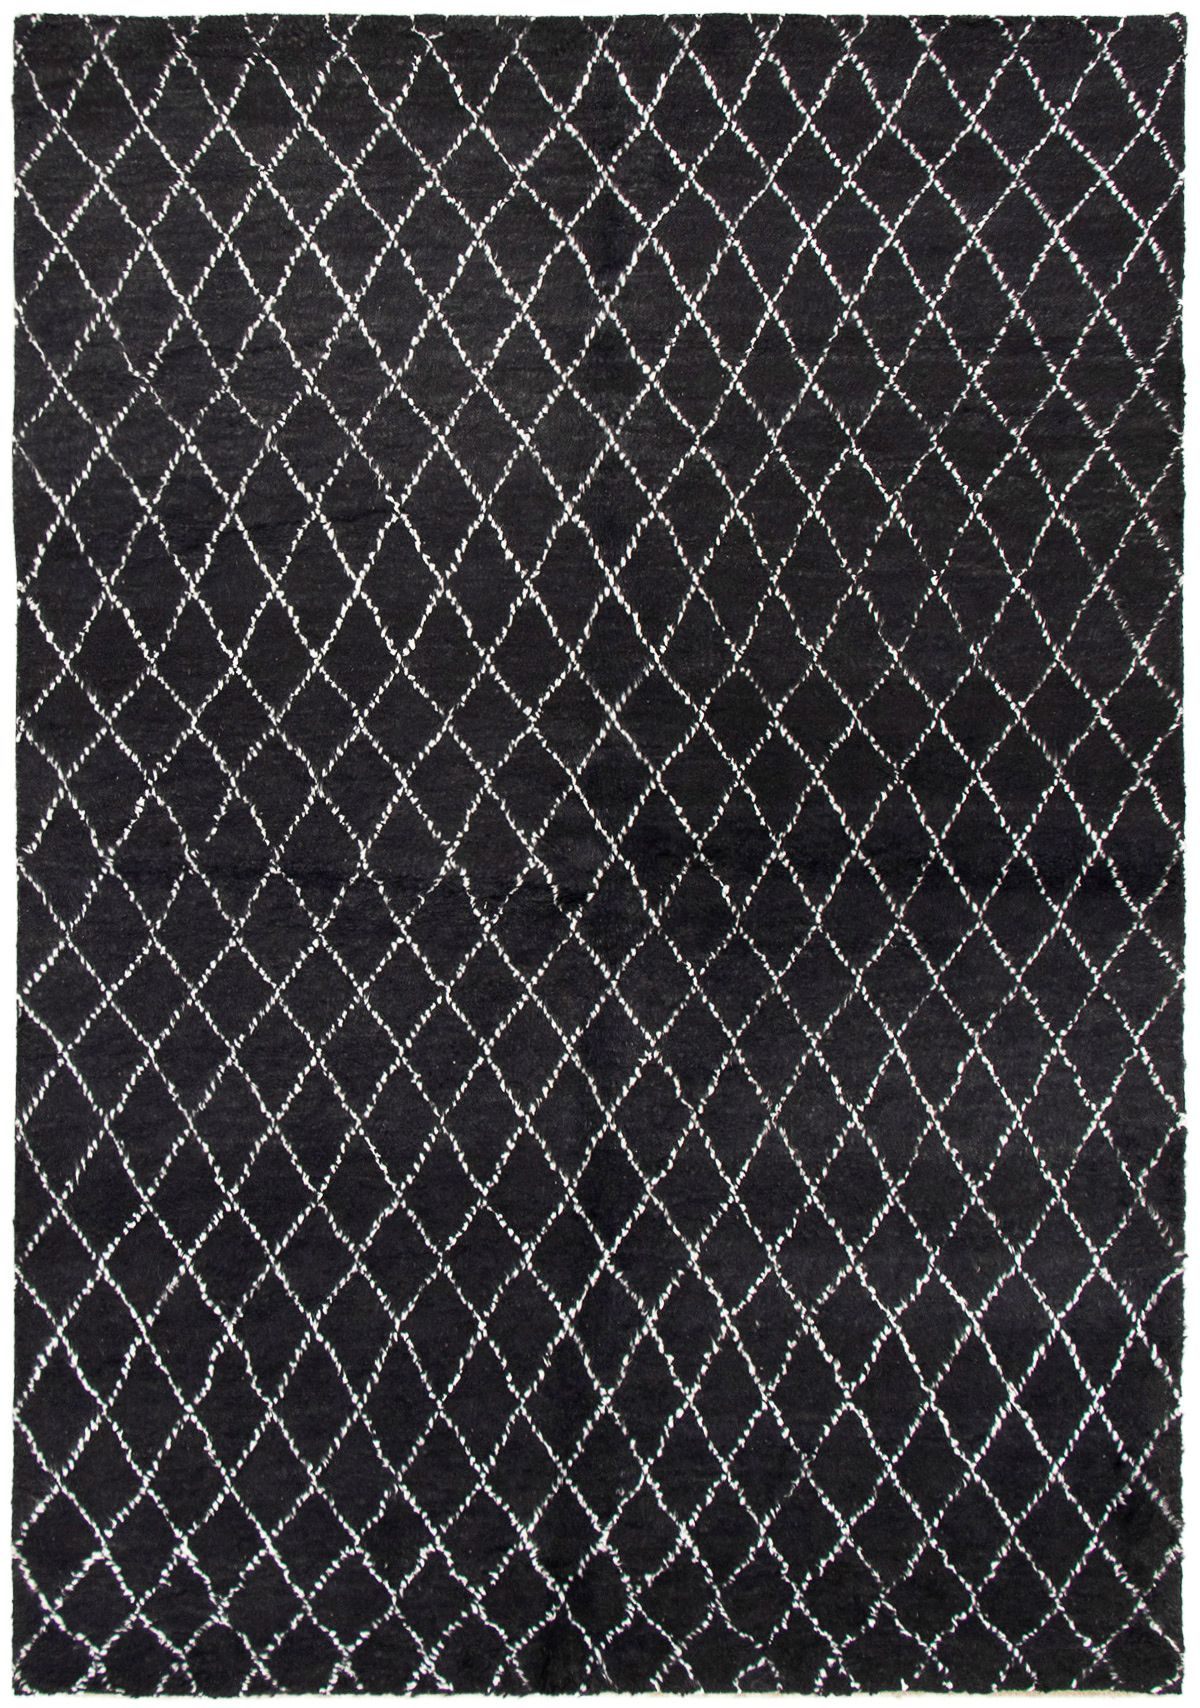 """Hand-knotted Arlequin Black Wool Rug 6'4"""" x 9'1"""" Size: 6'4"""" x 9'1"""""""